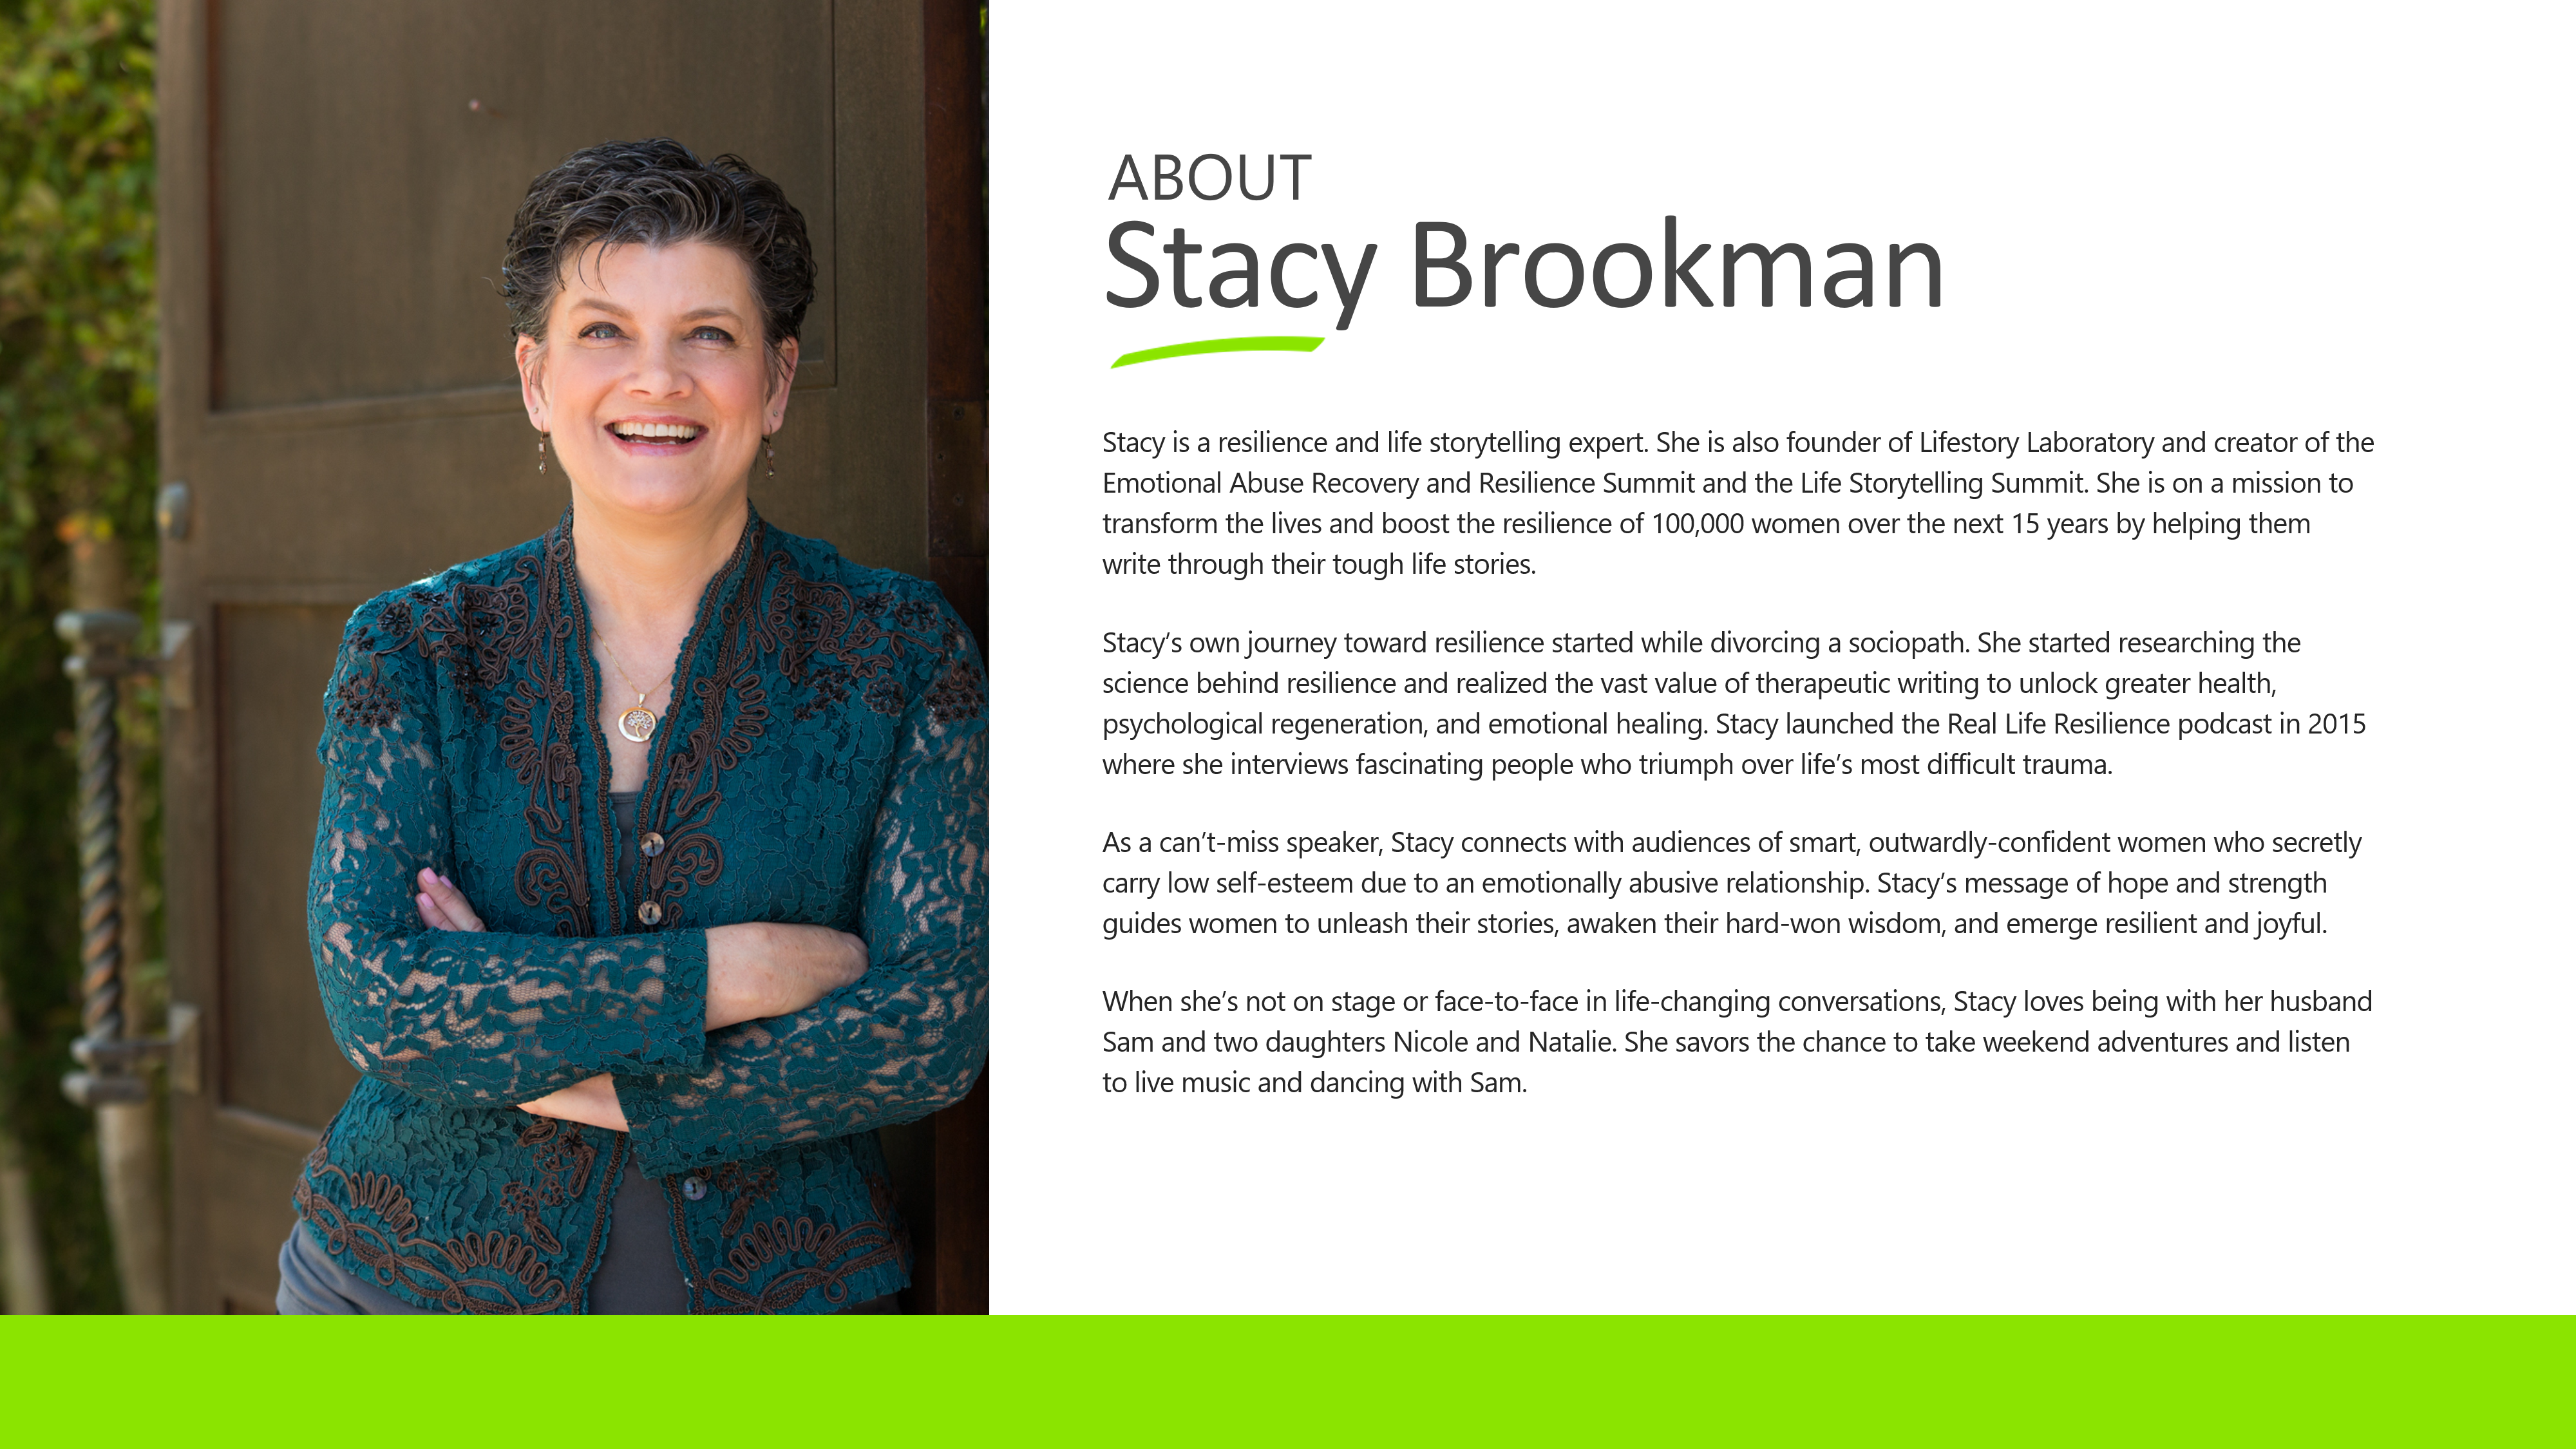 About Stacy Brookman